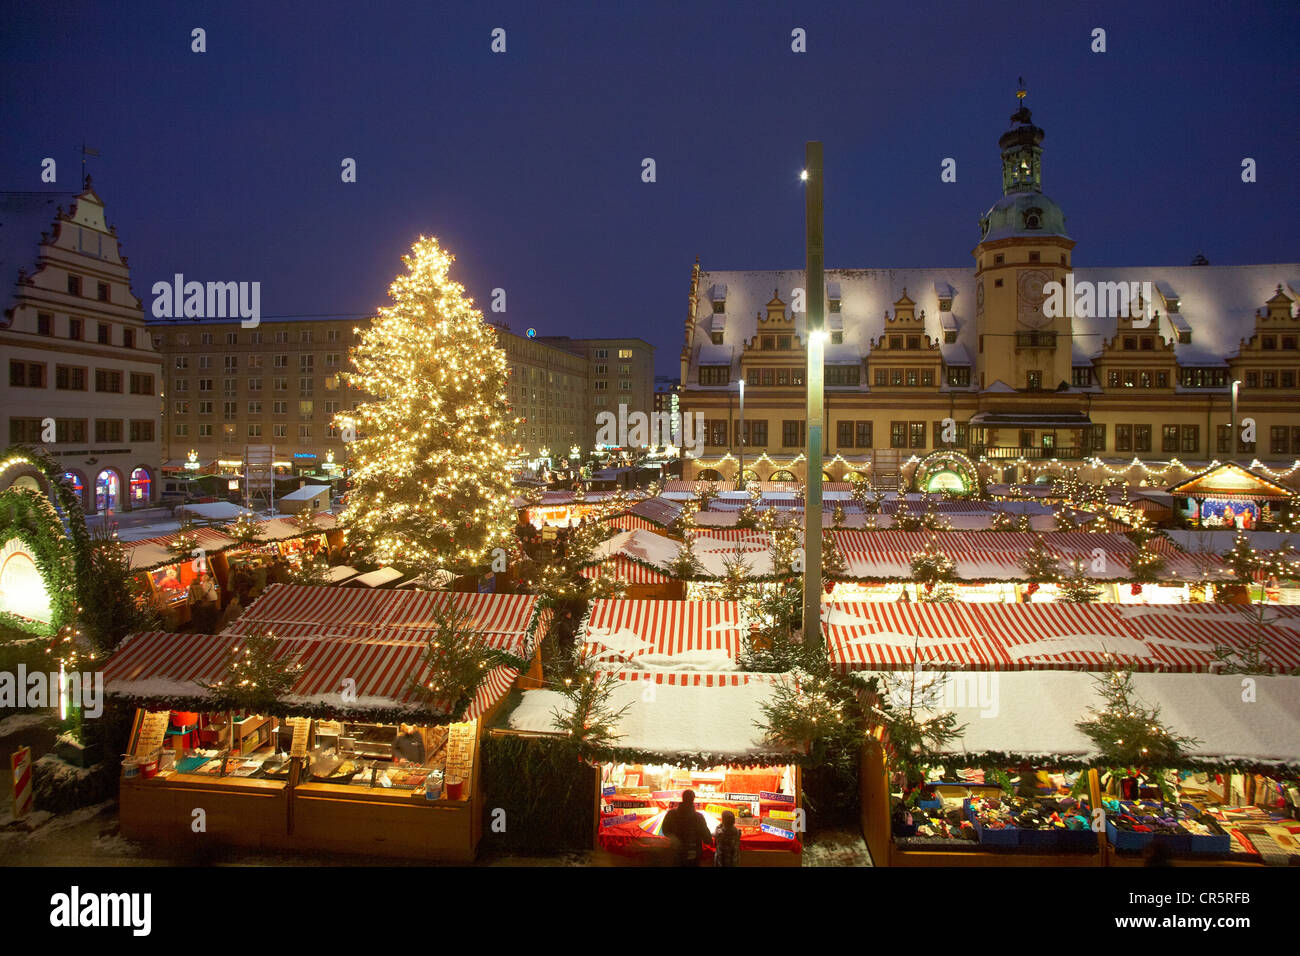 leipzig germany christmas market stockfotos leipzig germany christmas market bilder alamy. Black Bedroom Furniture Sets. Home Design Ideas